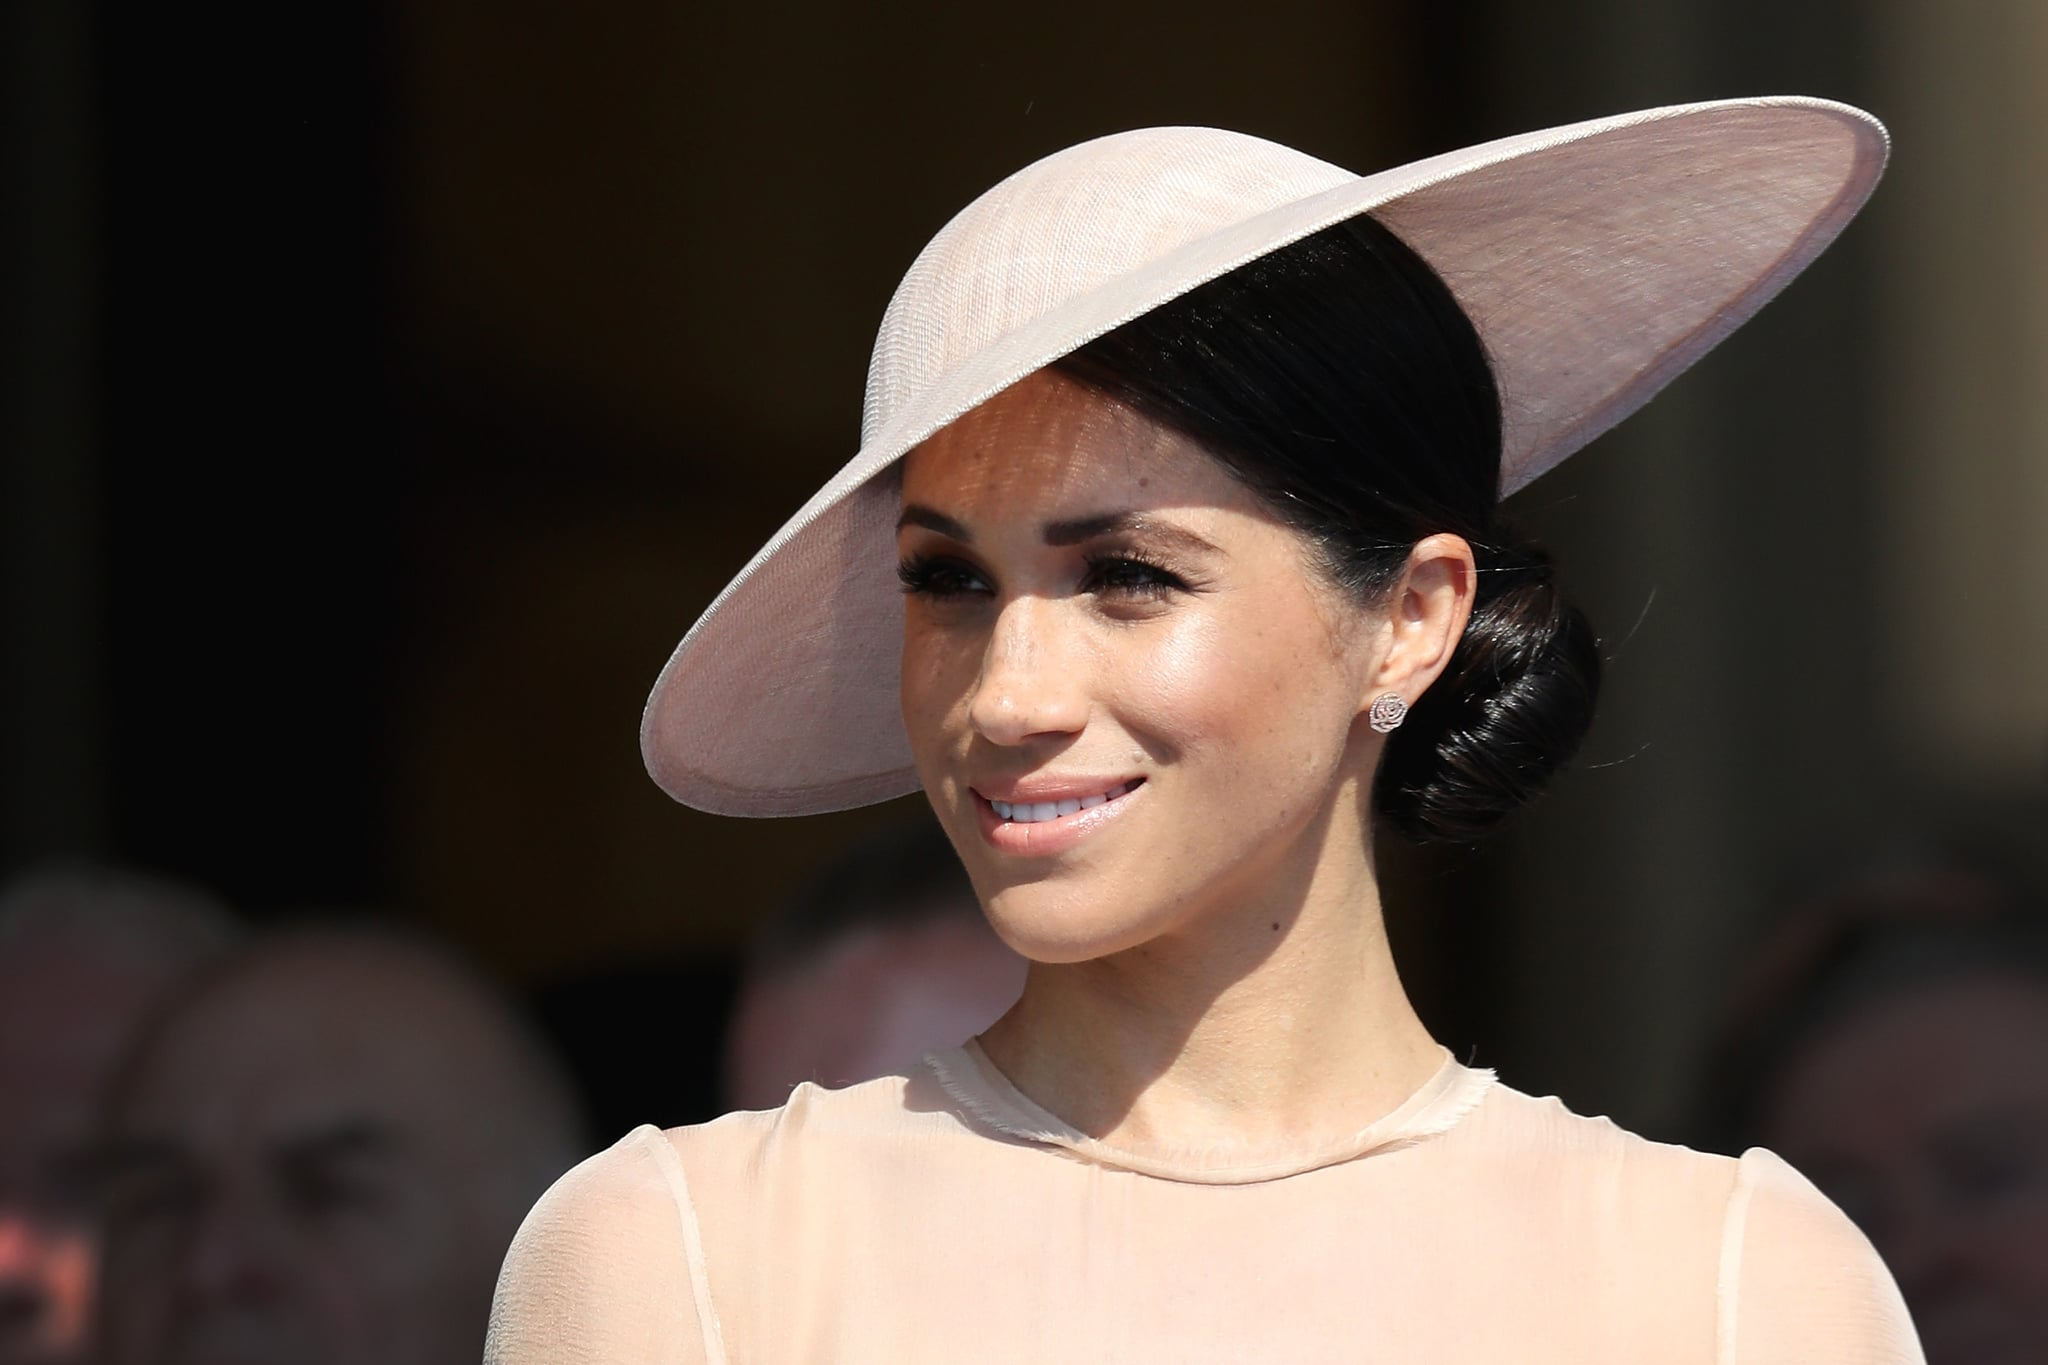 LONDON, ENGLAND - MAY 22:  Meghan, Duchess of Sussex attends The Prince of Wales' 70th Birthday Patronage Celebration held at Buckingham Palace on May 22, 2018 in London, England.  (Photo by Chris Jackson/Chris Jackson/Getty Images)